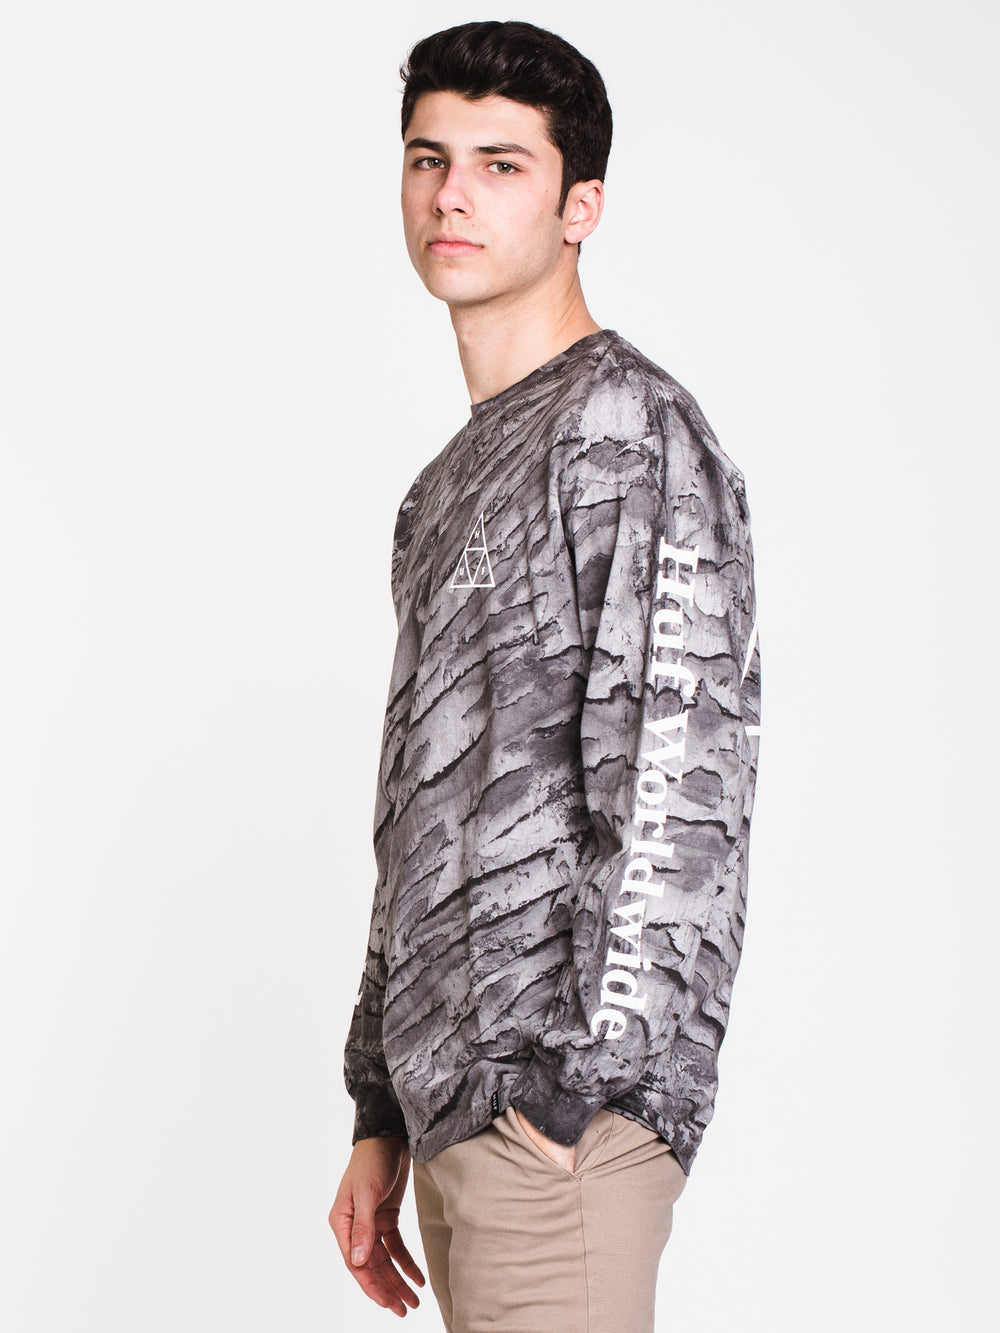 MENS SOHO MARBLED WASH LONG SLEEVE T-SHIRT - CLEARANCE